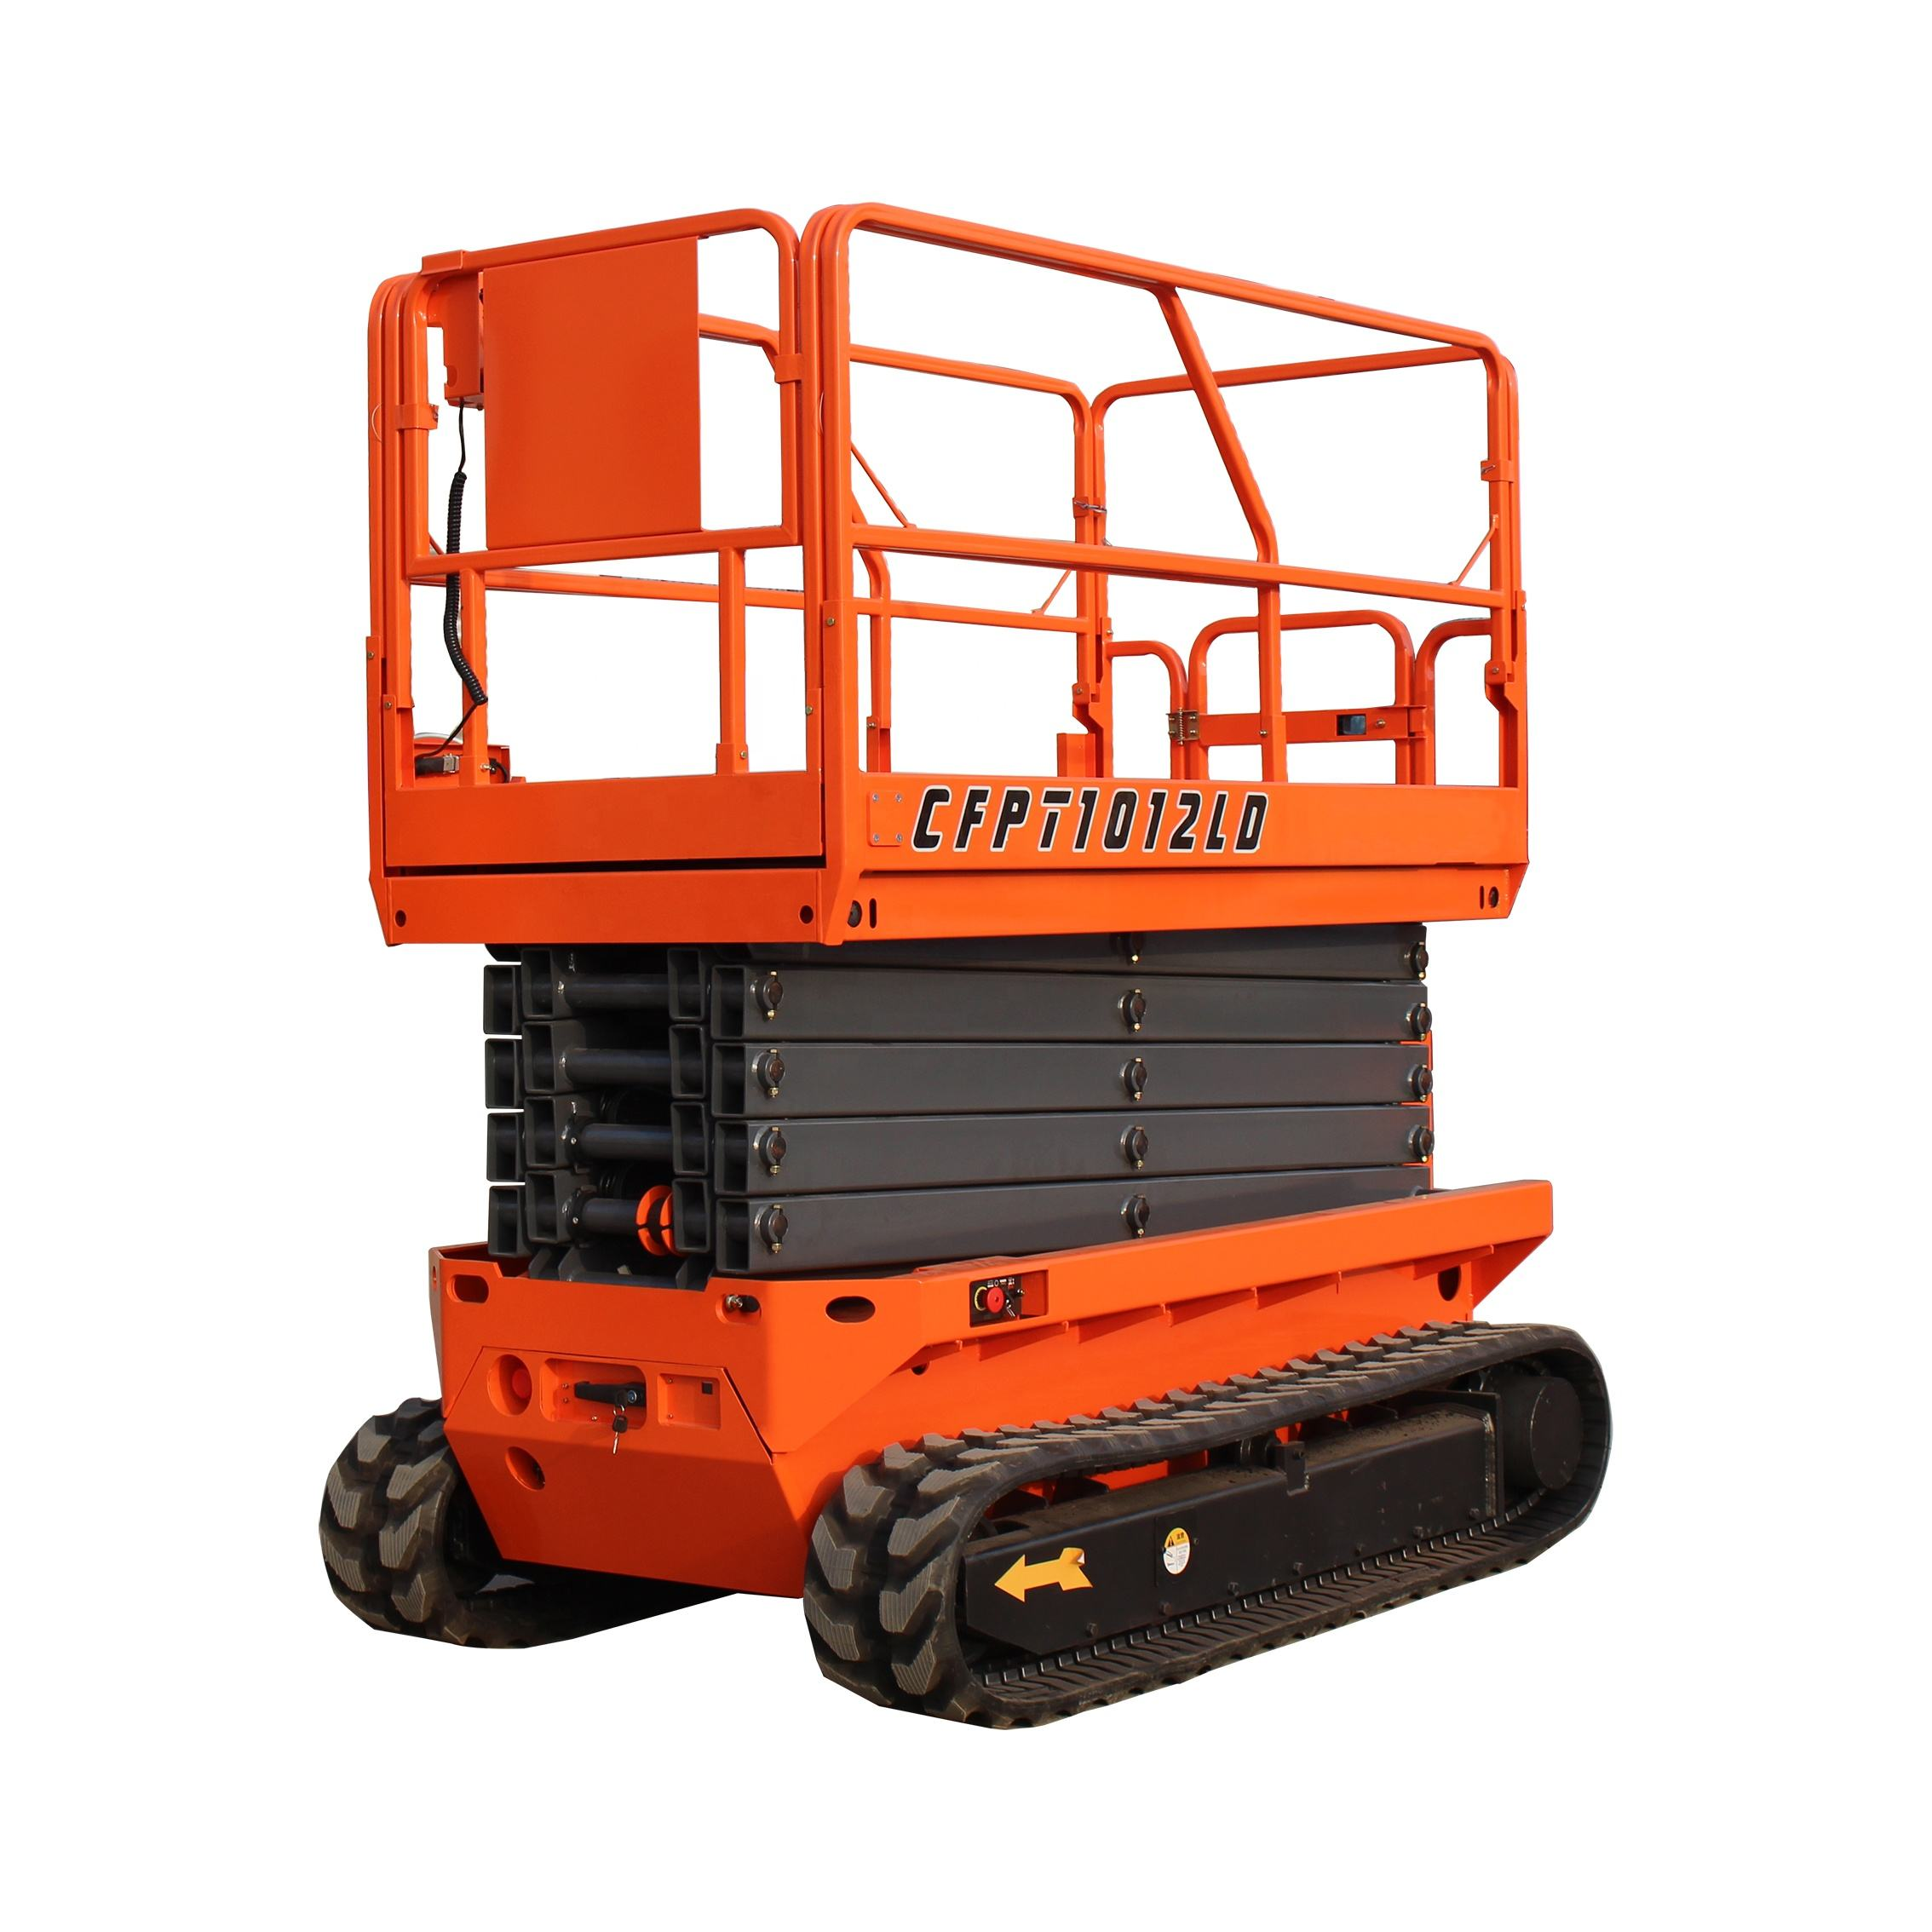 2020 NEW stock 6m 8m 10m 12m 14m CE approved hydraulic lifting platform/tracked scissor lift